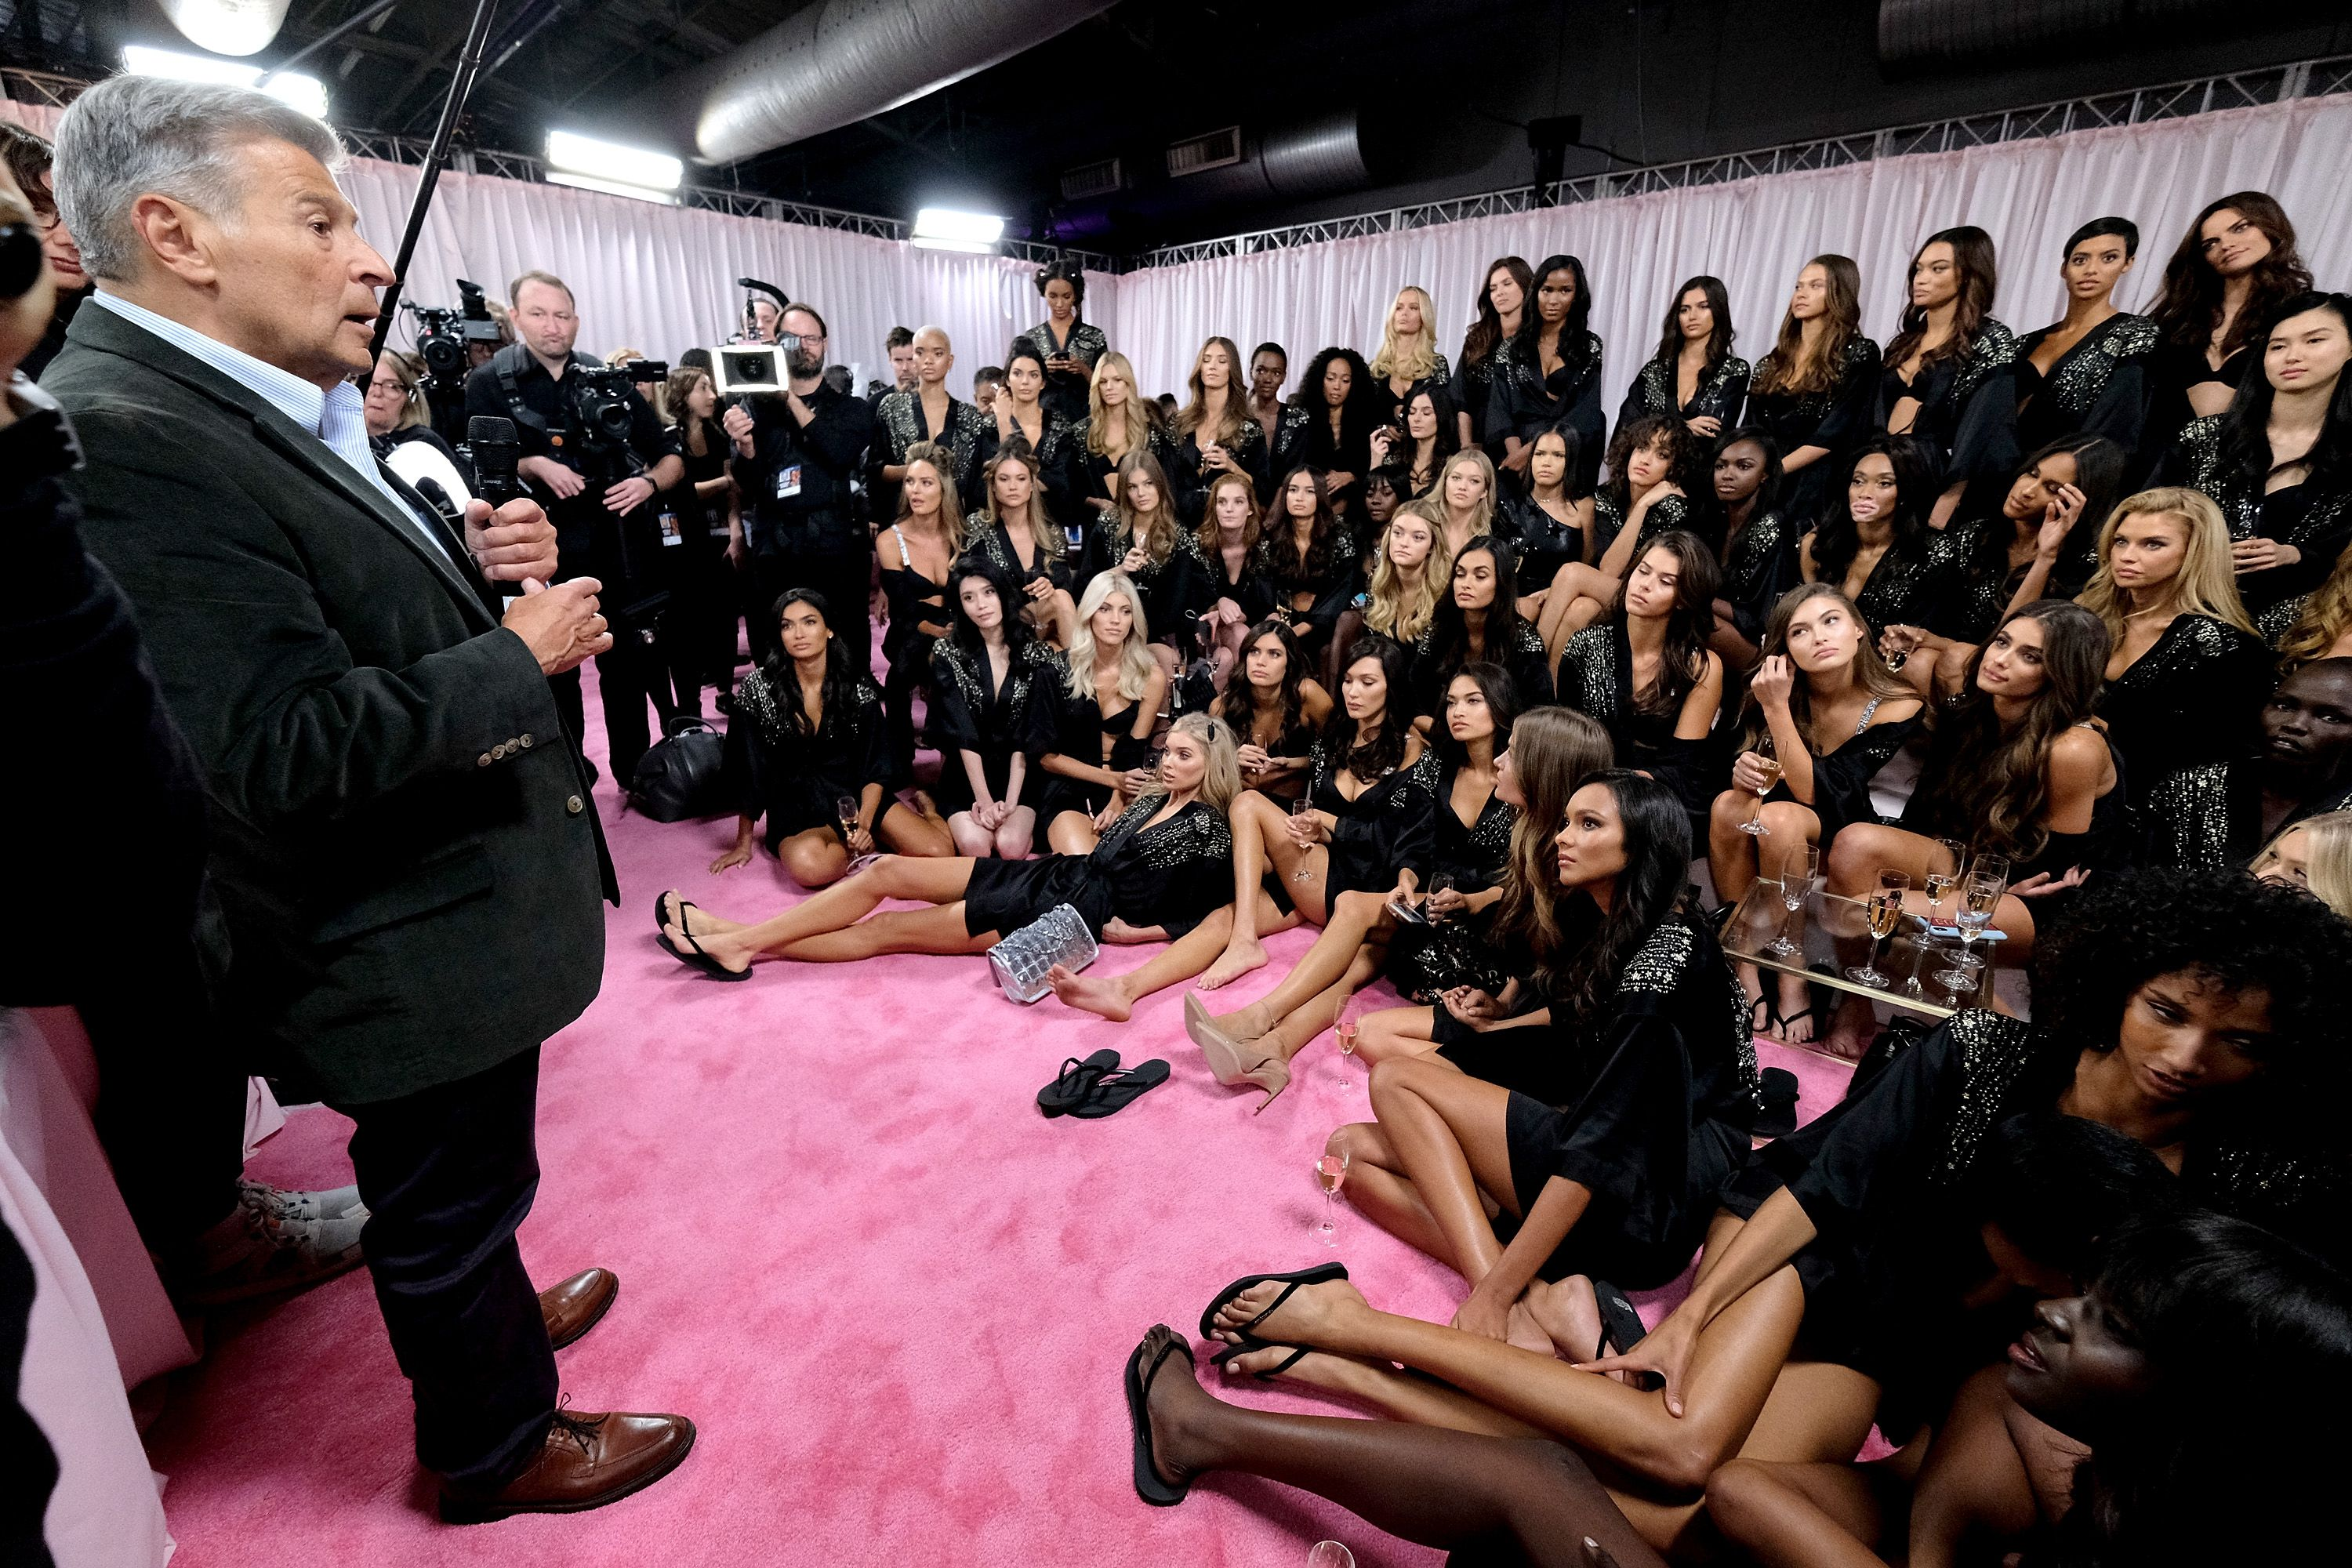 Victoria's Secret Show 2019 - The Models, Location And More